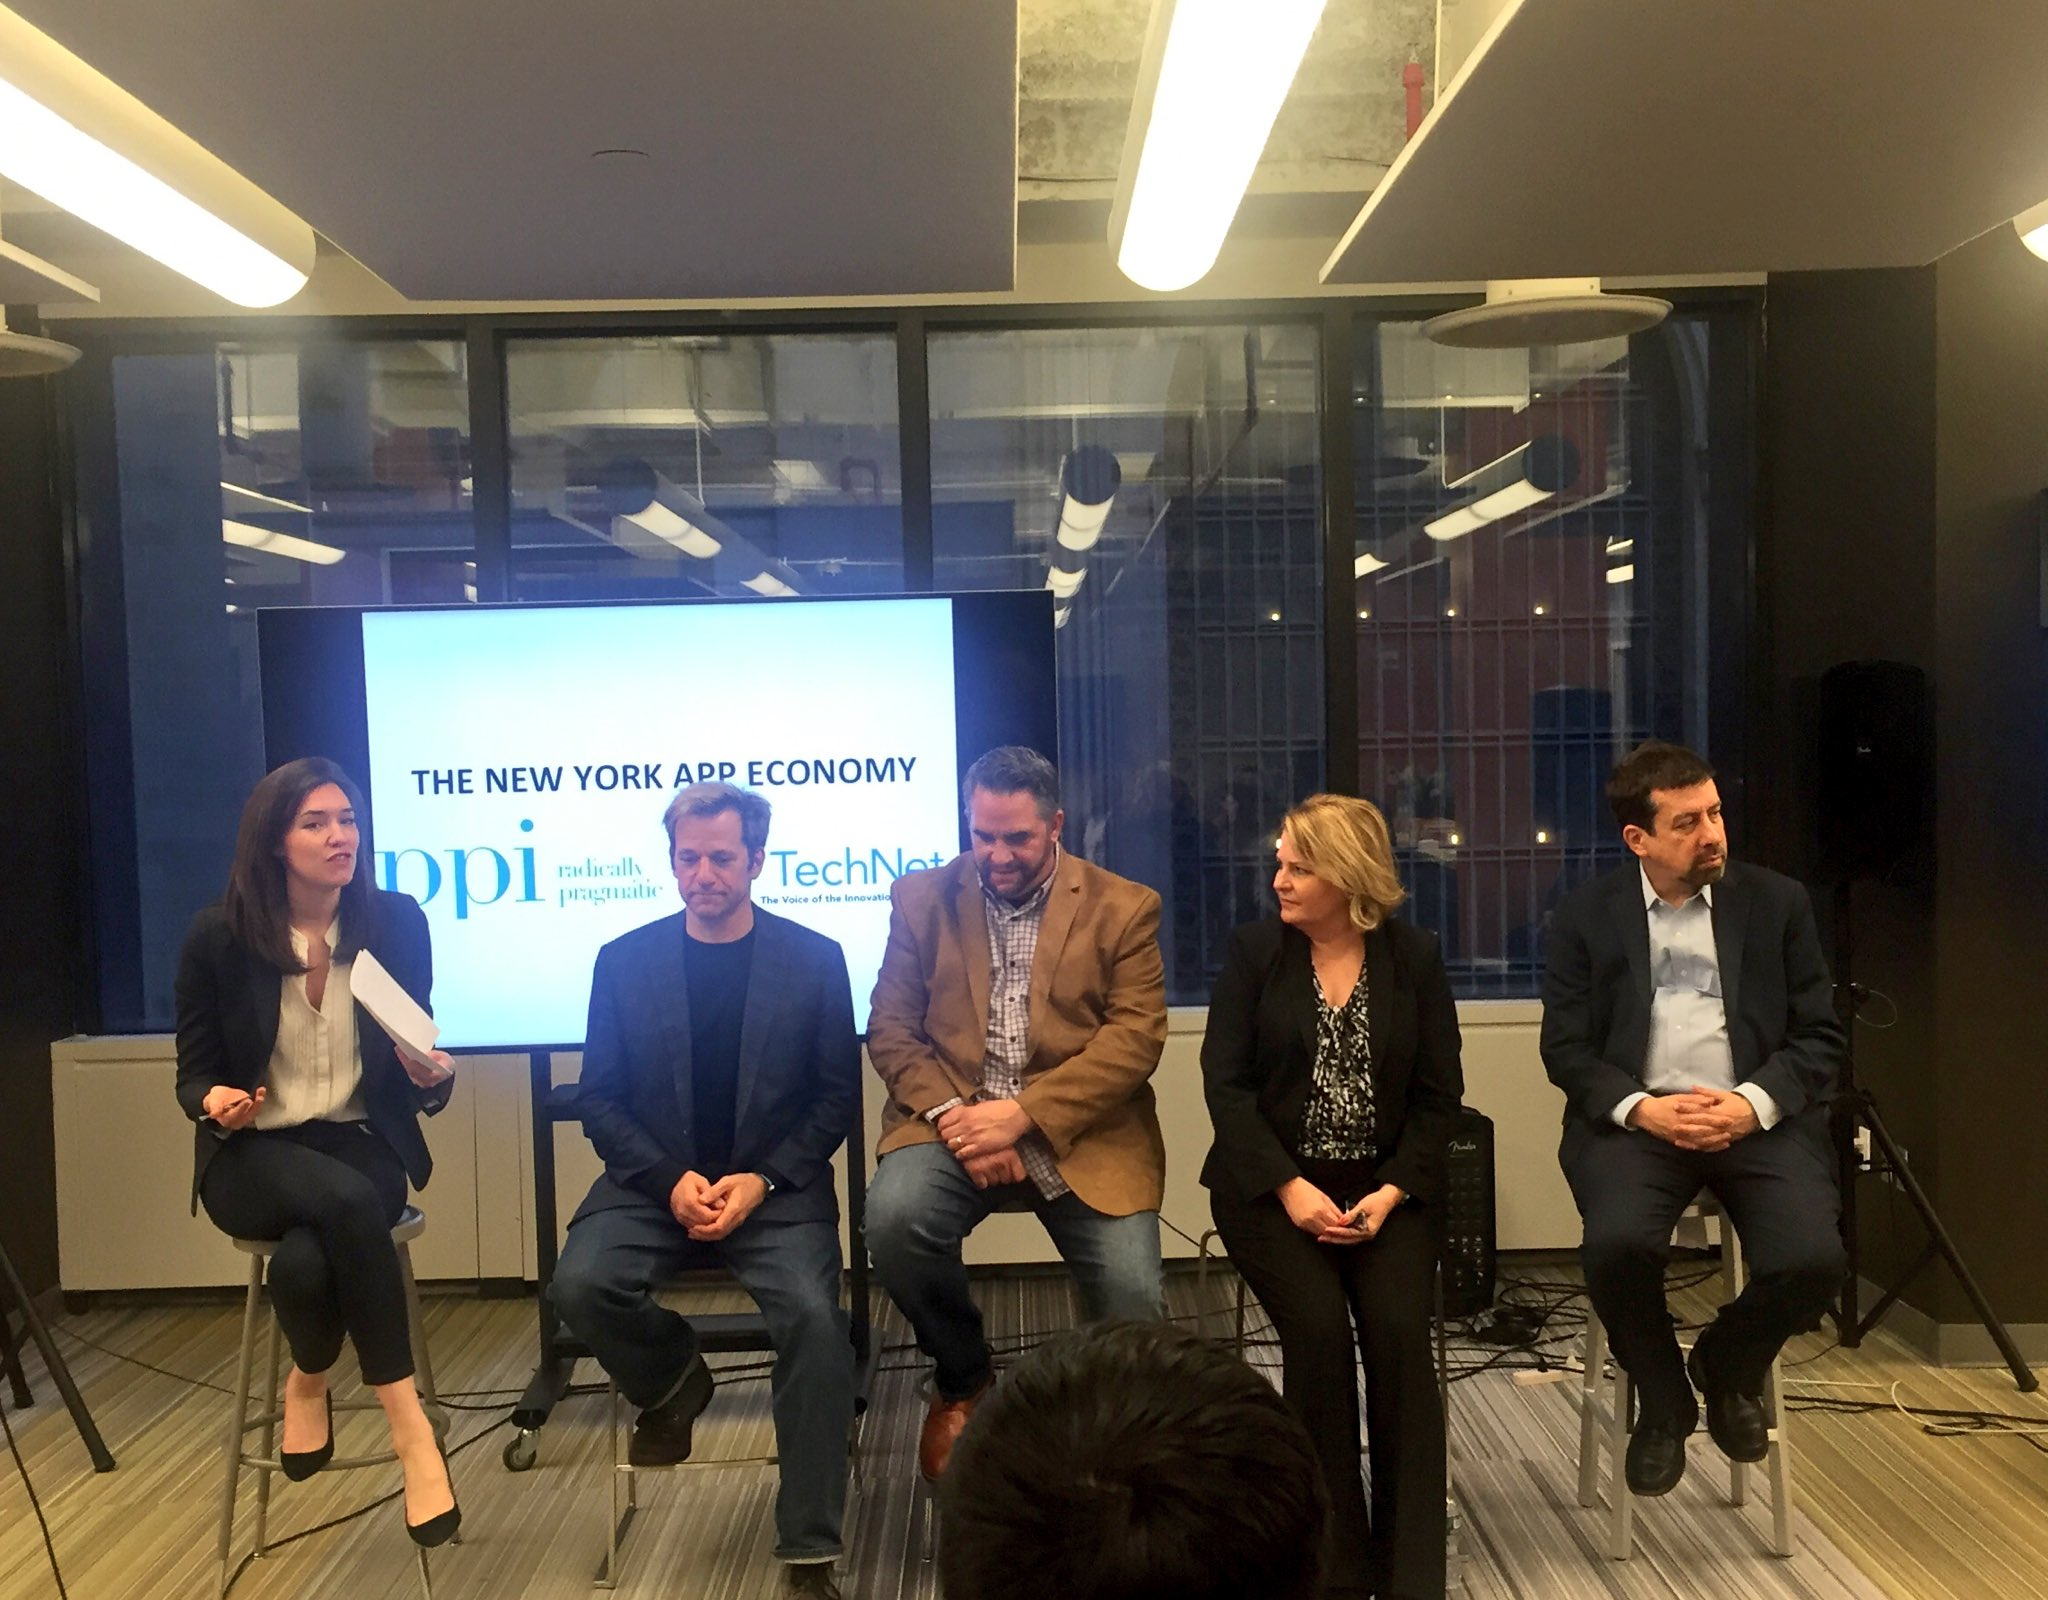 Panel on NYC's role in the #AppEconomy, moderated by @1776NY's @RachelHaot (convened by @TechNetUpdate & @ppi) https://t.co/rKssuKZduN